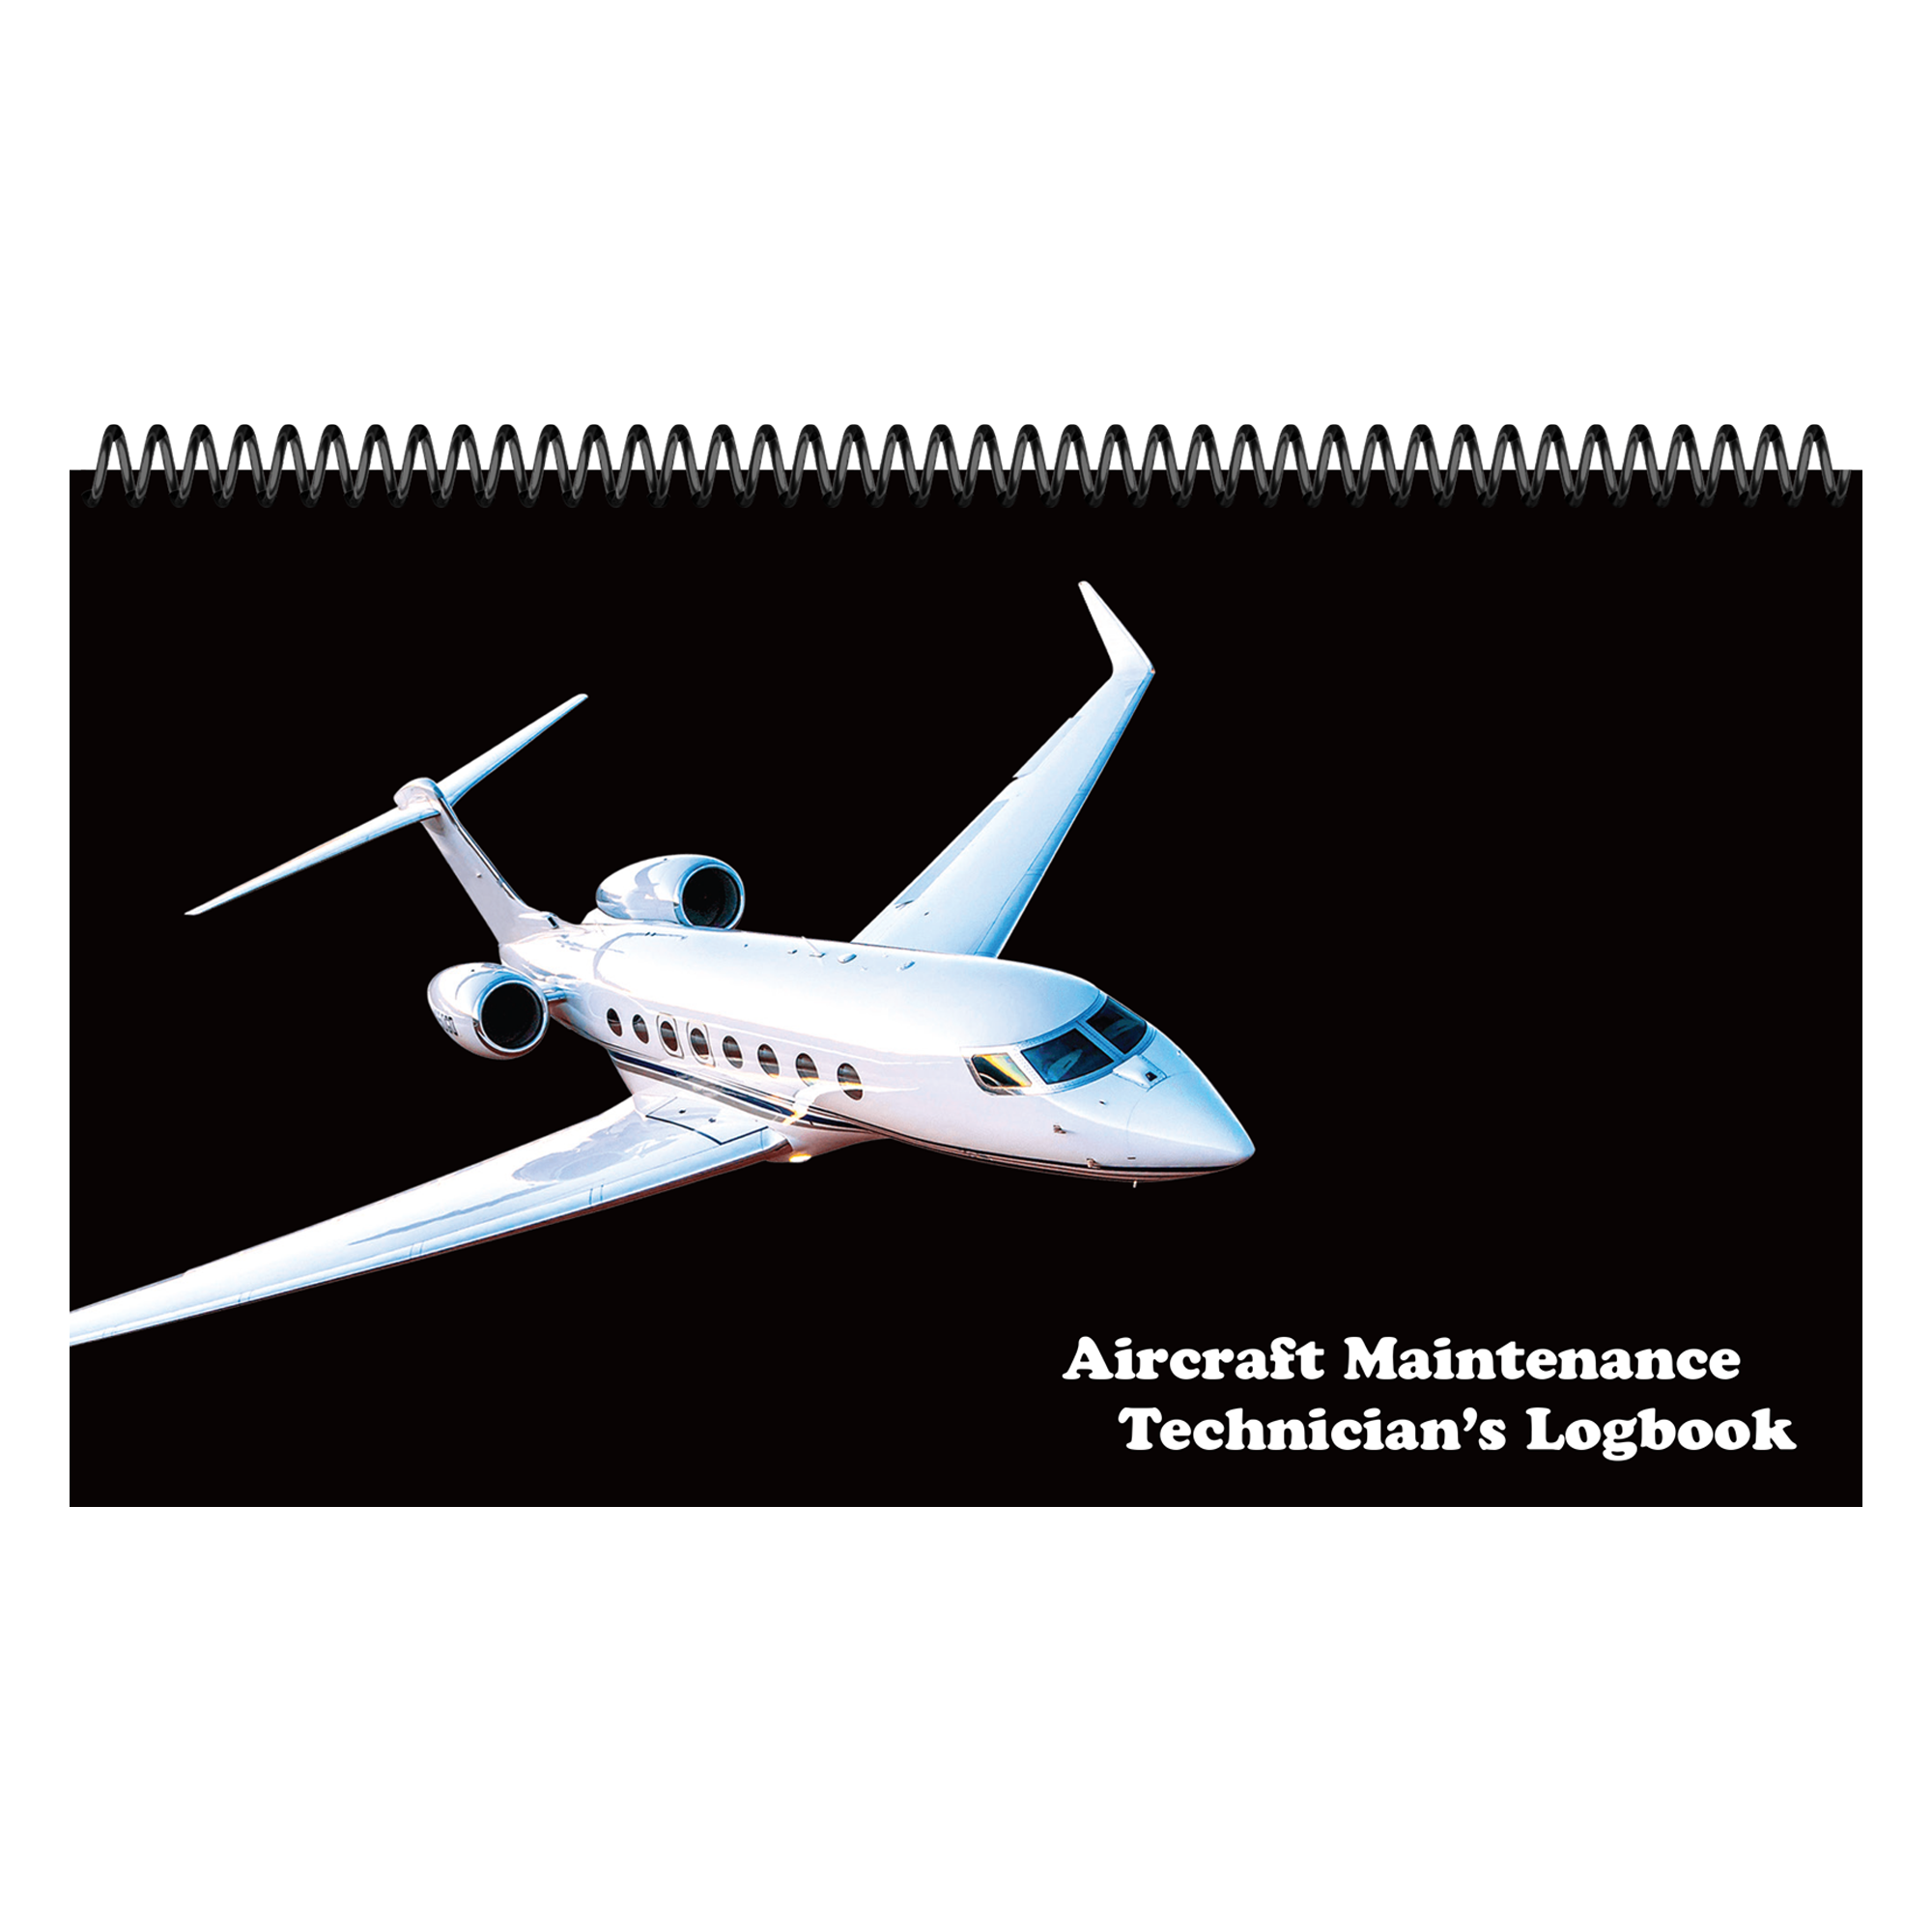 AMT Technician's Logbook